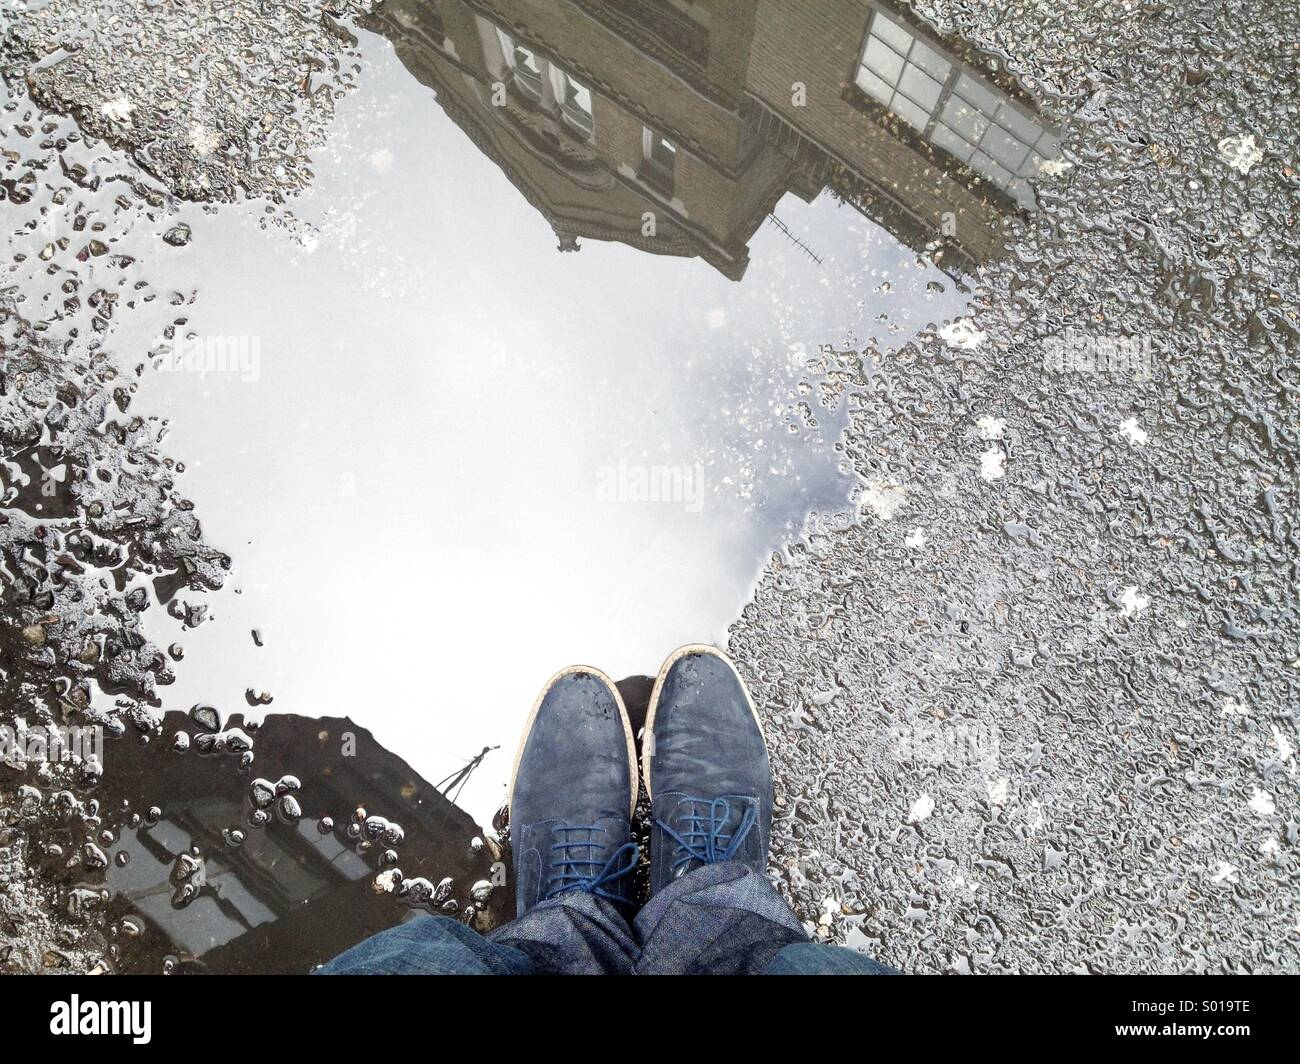 Standing next to puddle - Stock Image